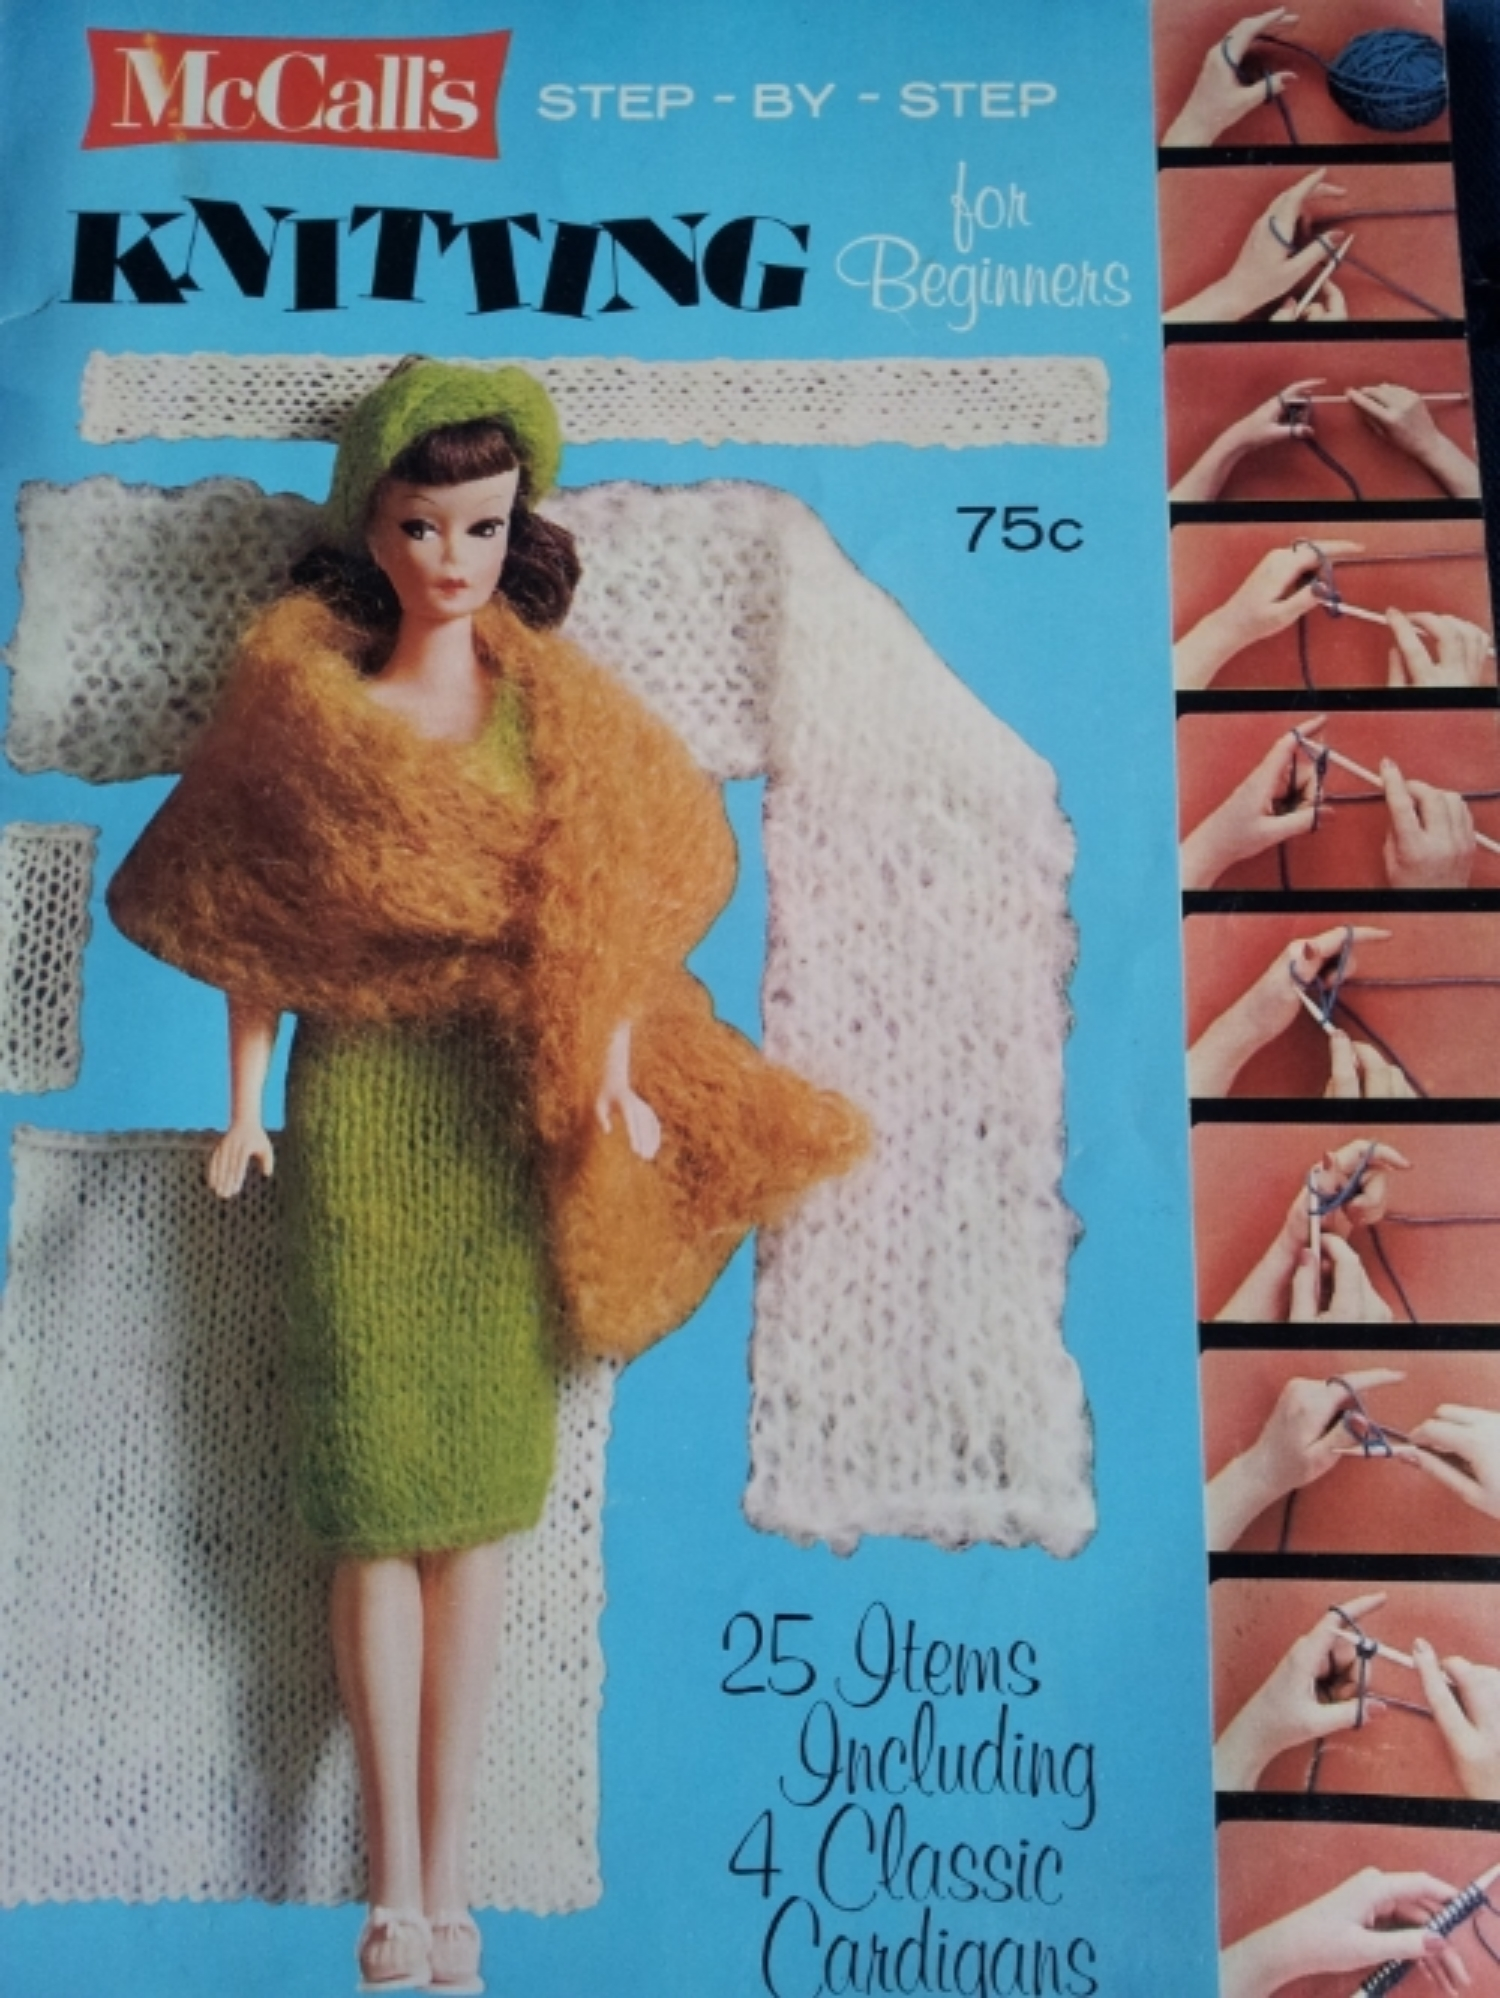 My first Knitting Book, still in my possession.